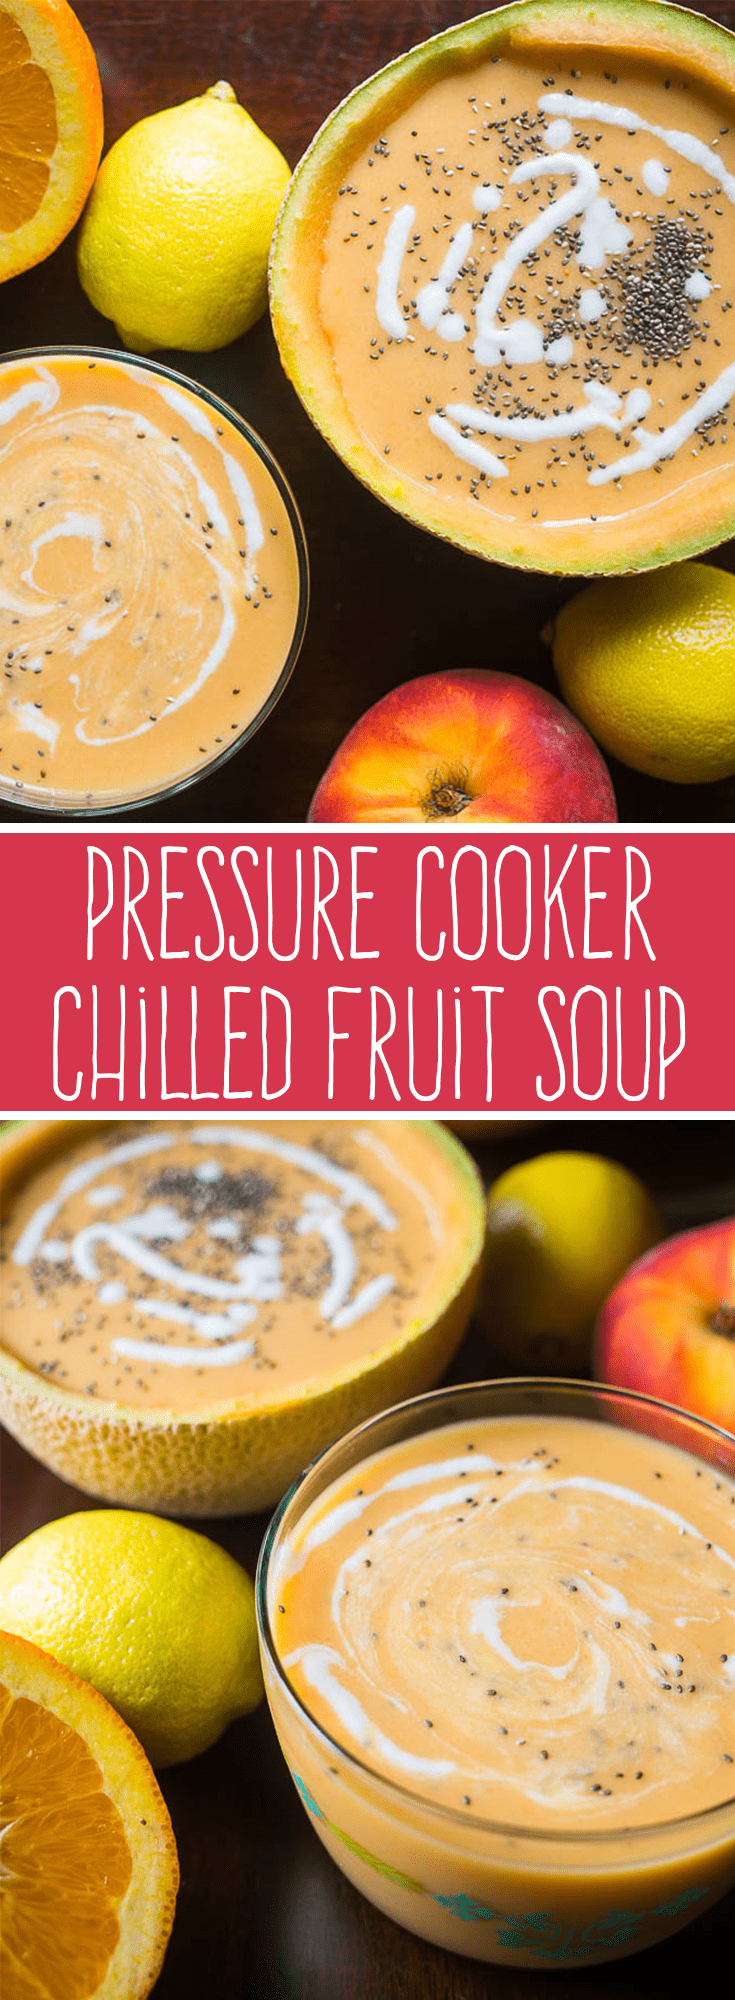 Chilled Fruit Soup is the perfect way to turn your favorite summer fruits into a creamy and delicious snack, dessert, or wholesome breakfast!This Pressure Cooker chilled fruit soup recipe makes a refreshing meal any time of the day! #soup #summerrecipes #instantpot #pressurecooker via @PressureCook2da